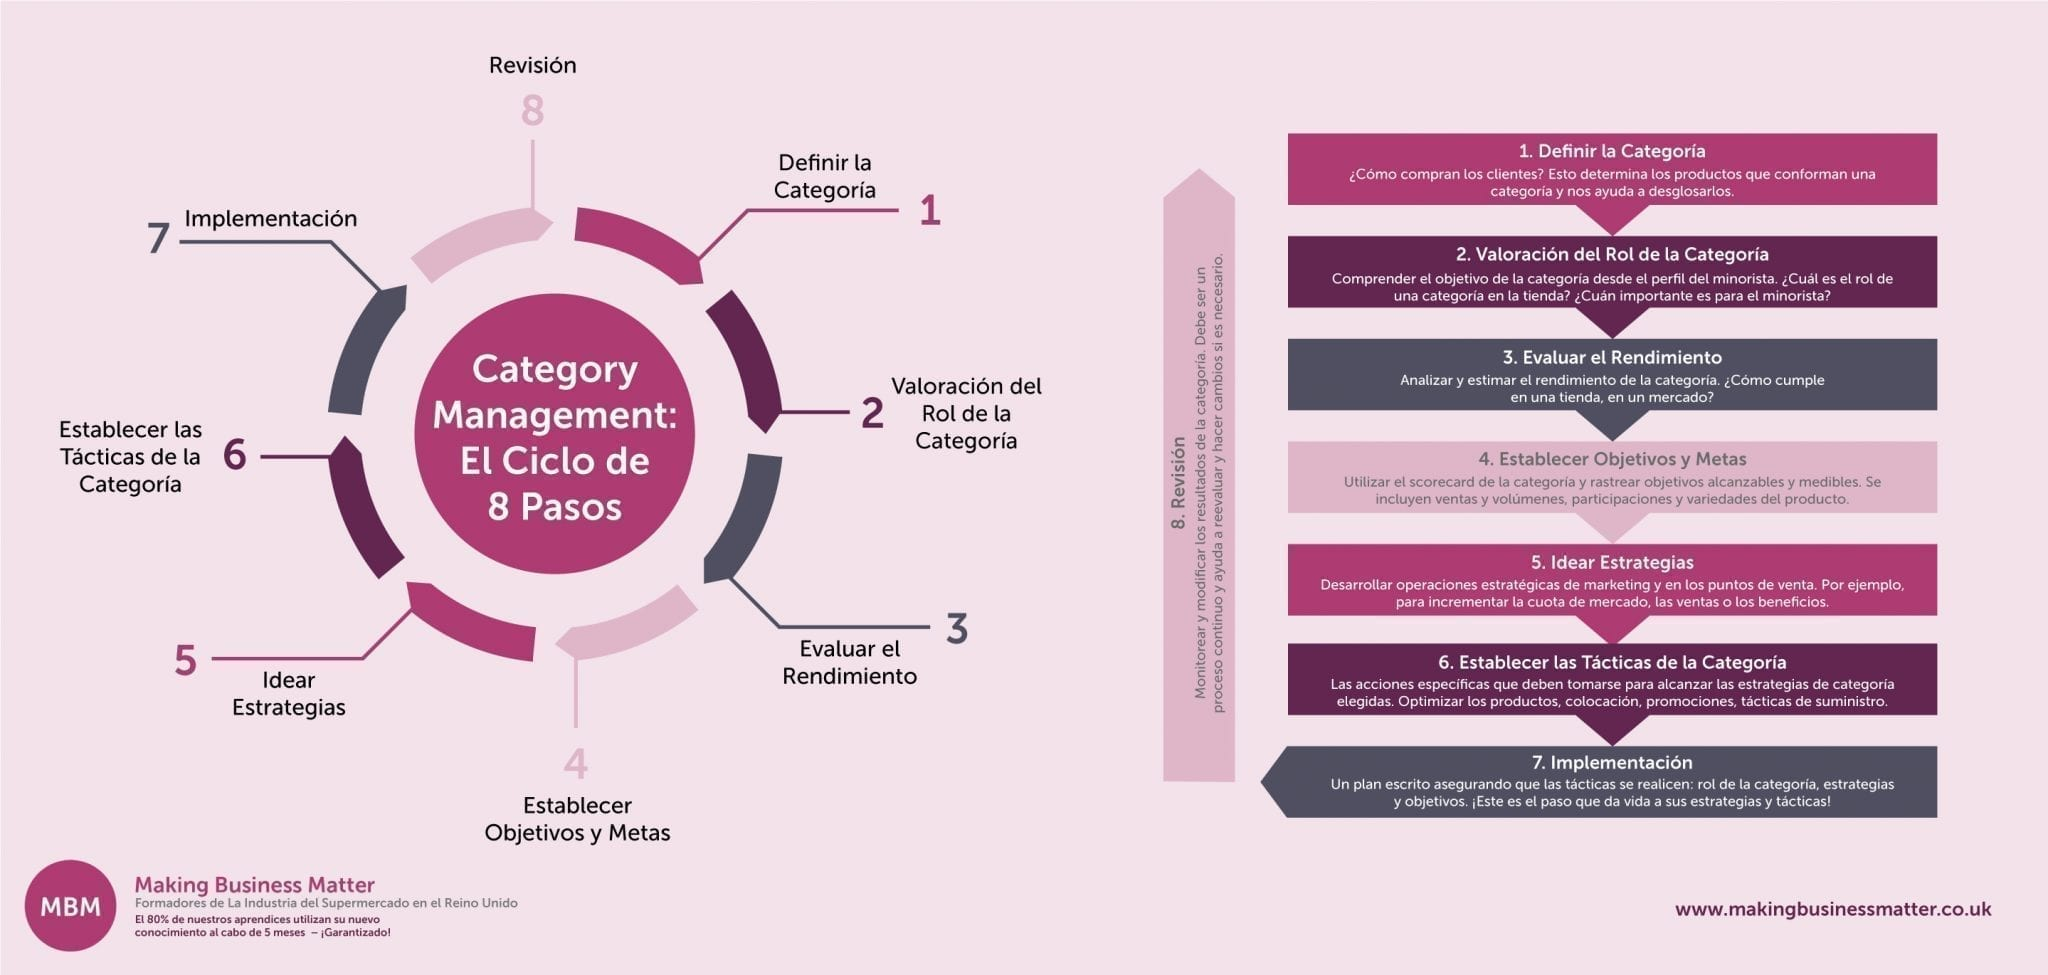 Category Management: El Ciclo de 8 Pasos